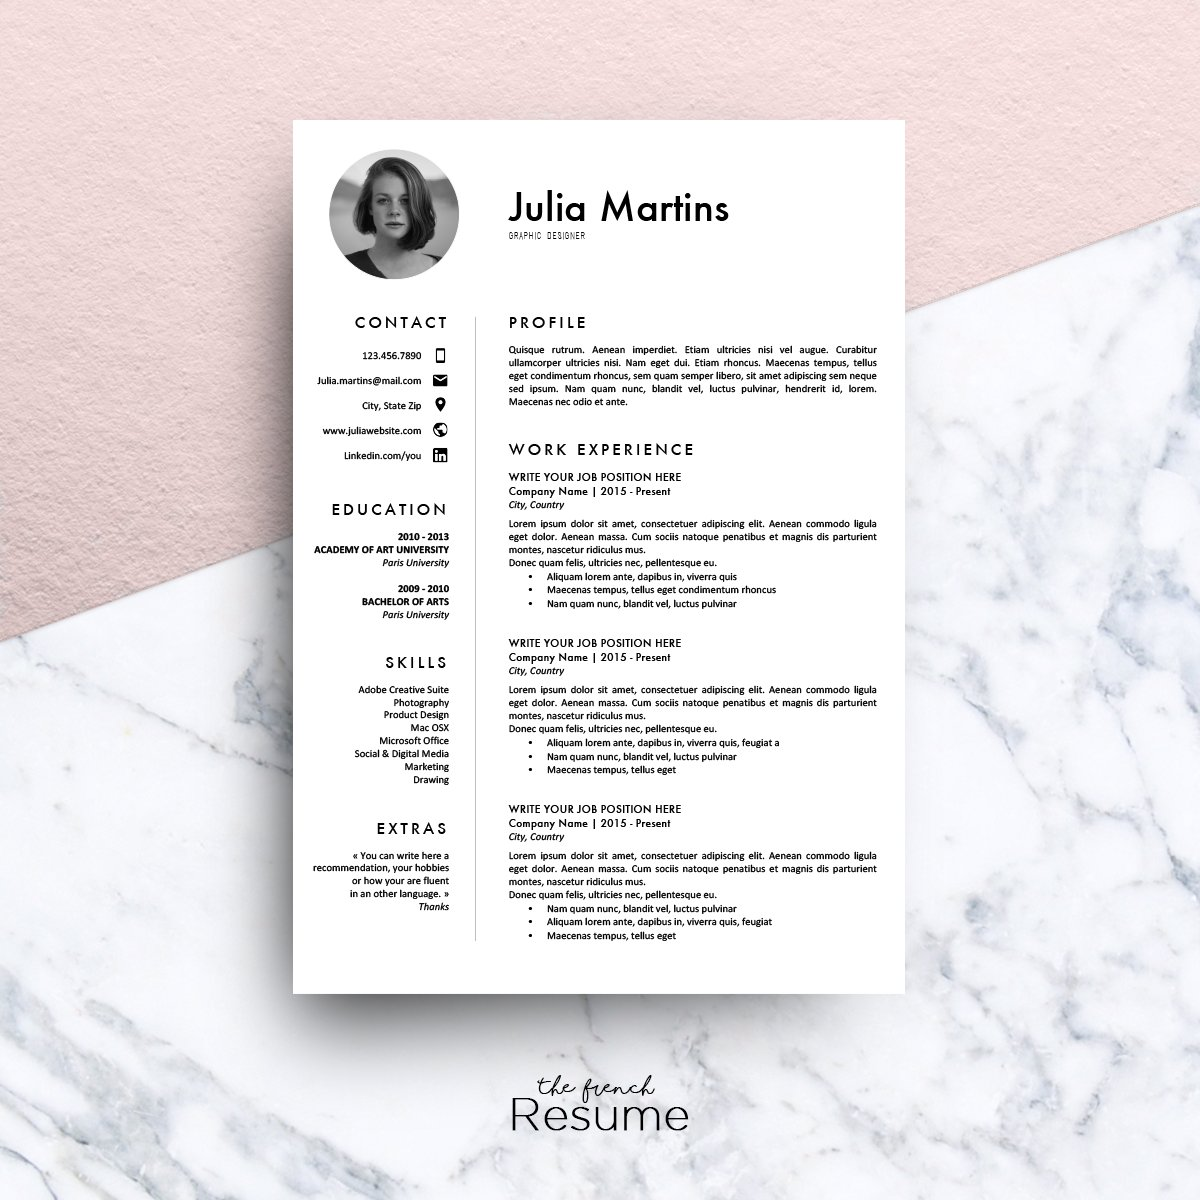 resume template ms word julia resume templates creative market - Resume Templates In Microsoft Word